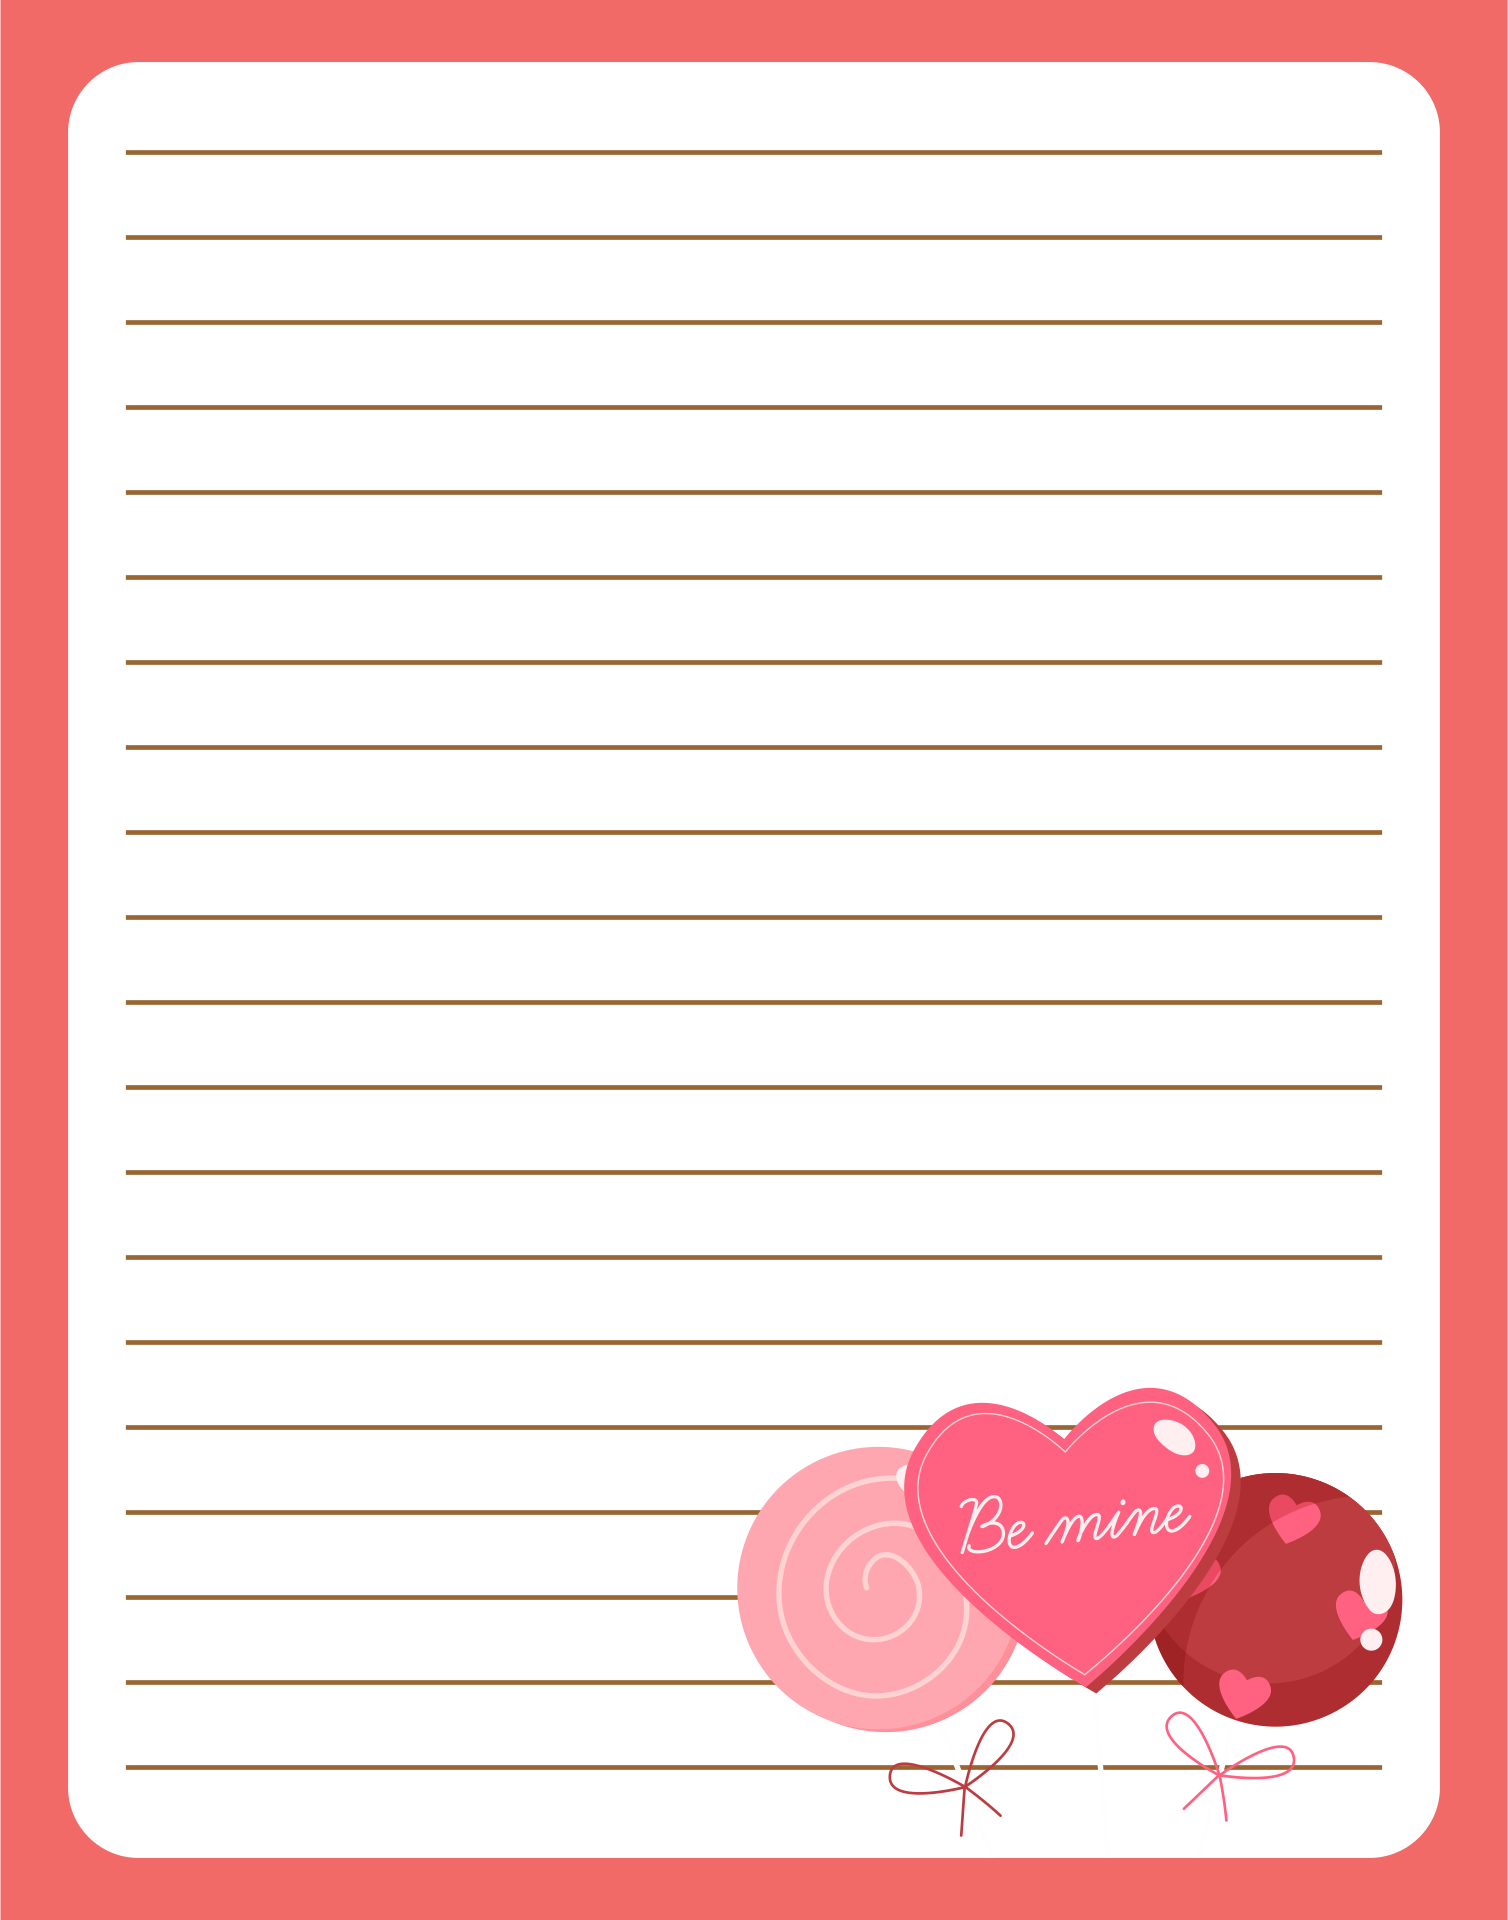 8 Images of Cute Owls Love Letter Stationery Printable